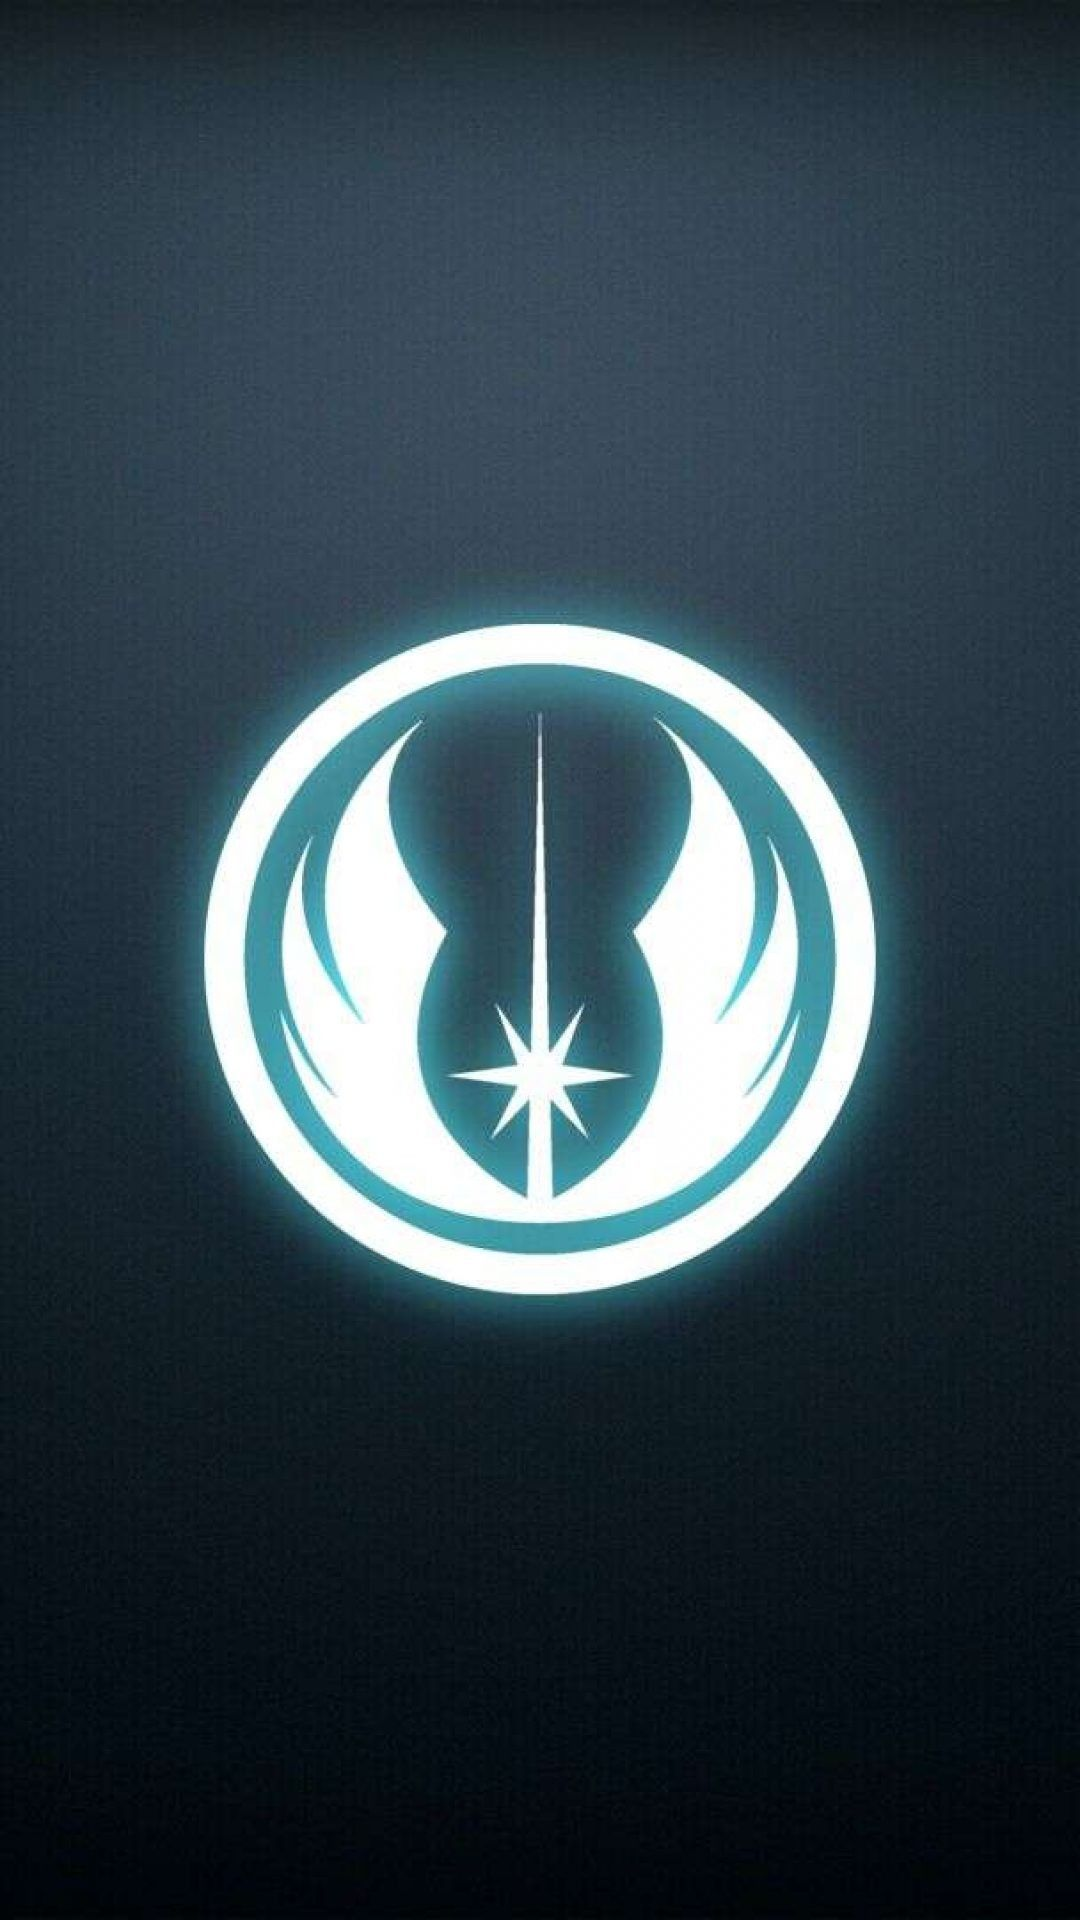 Jedi Order Wallpapers Top Free Jedi Order Backgrounds Wallpaperaccess